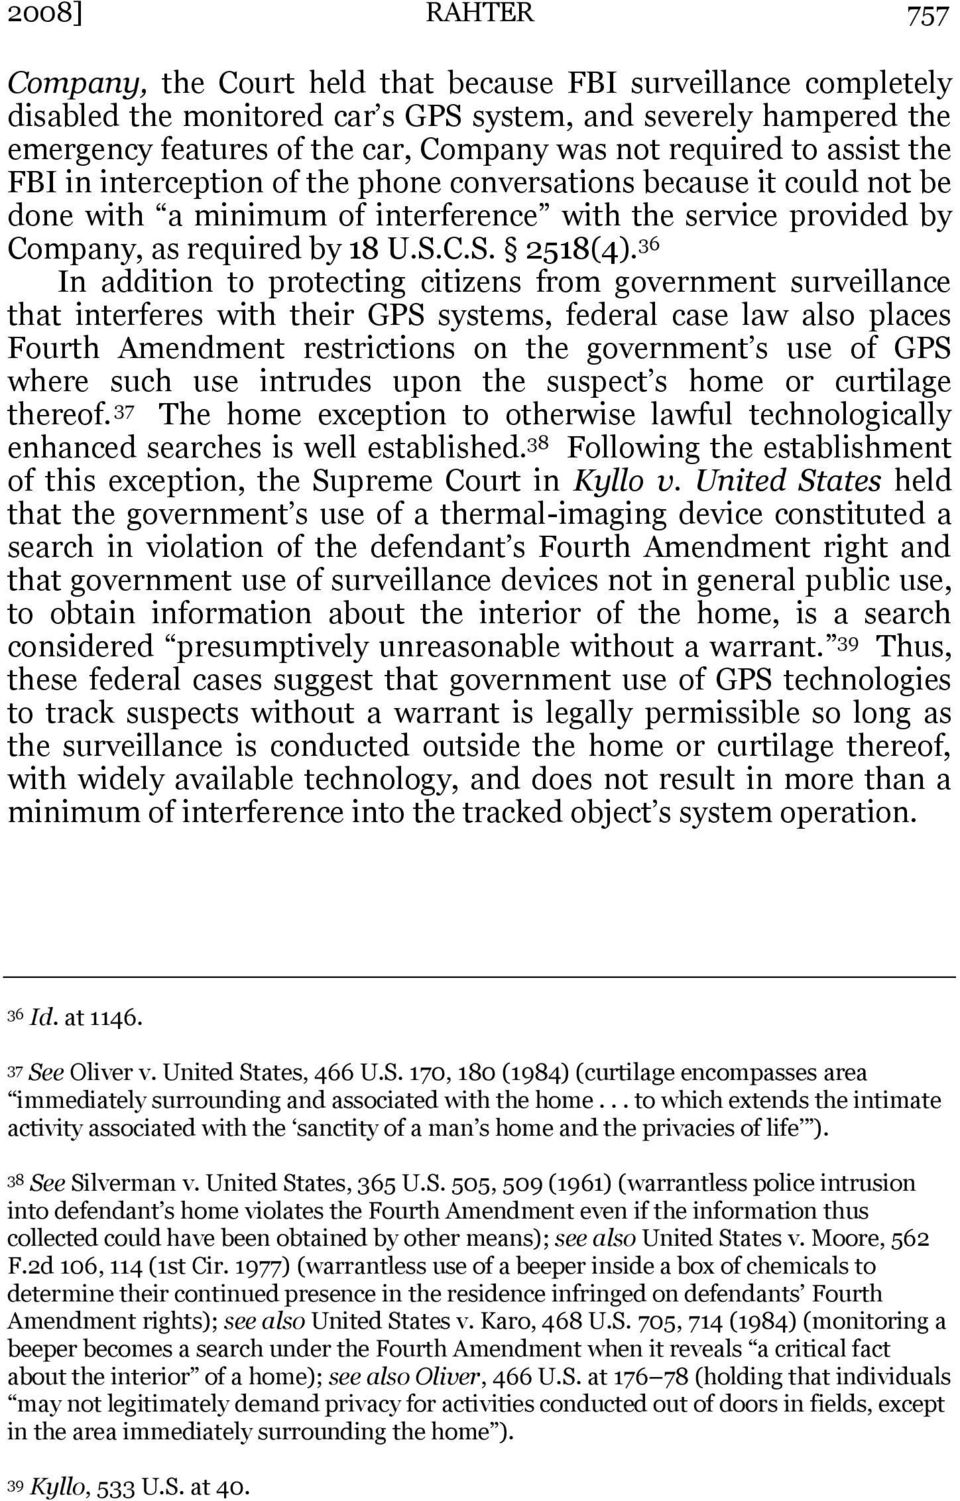 36 In addition to protecting citizens from government surveillance that interferes with their GPS systems, federal case law also places Fourth Amendment restrictions on the government s use of GPS